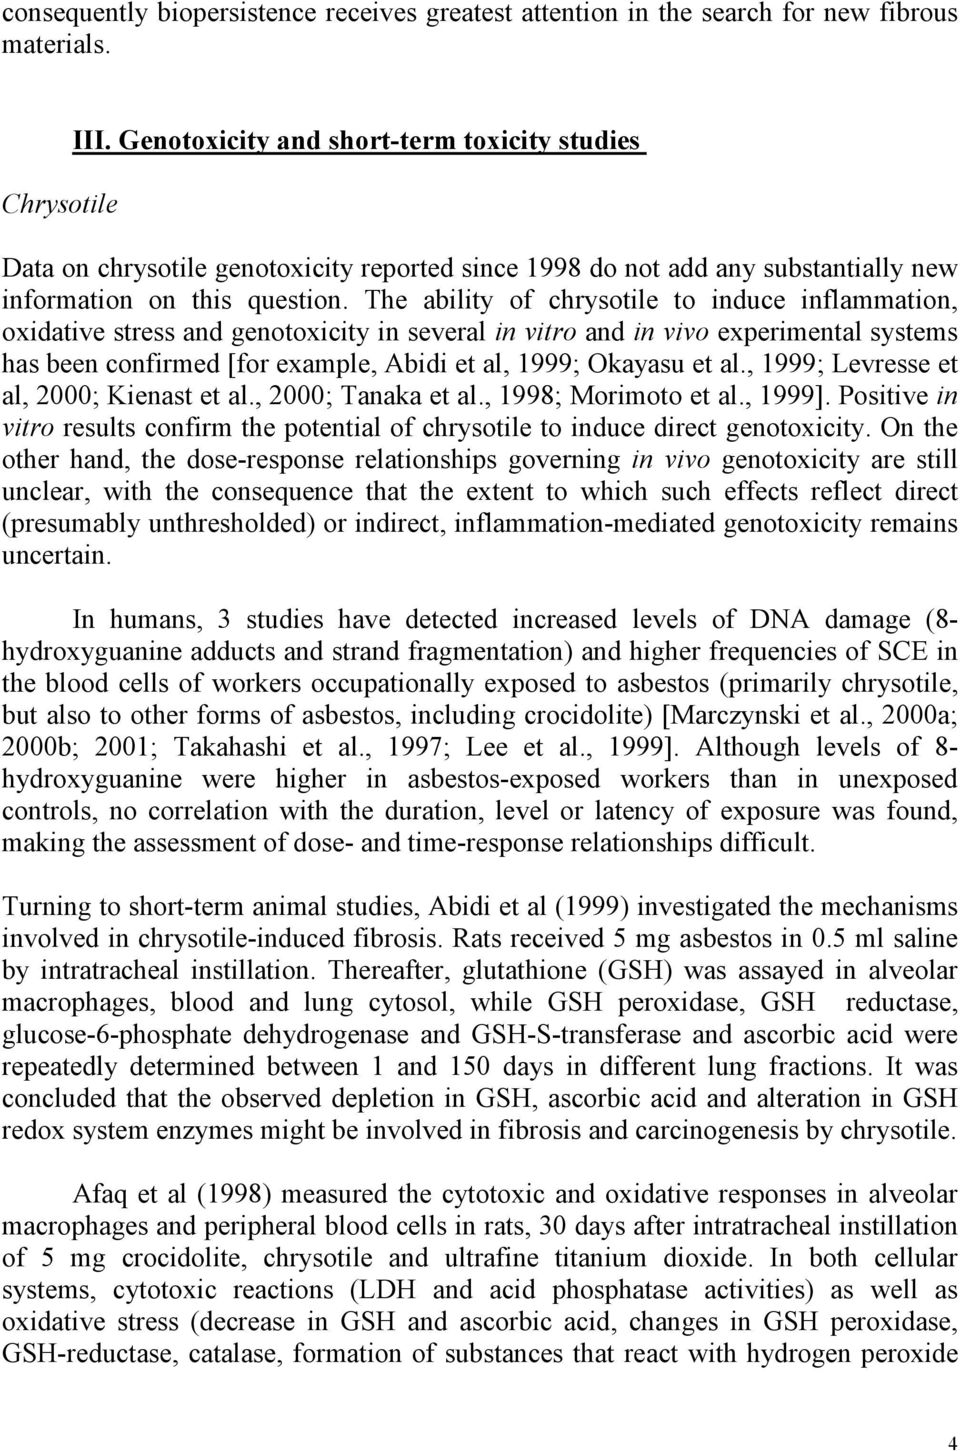 The ability of chrysotile to induce inflammation, oxidative stress and genotoxicity in several in vitro and in vivo experimental systems has been confirmed [for example, Abidi et al, 1999; Okayasu et